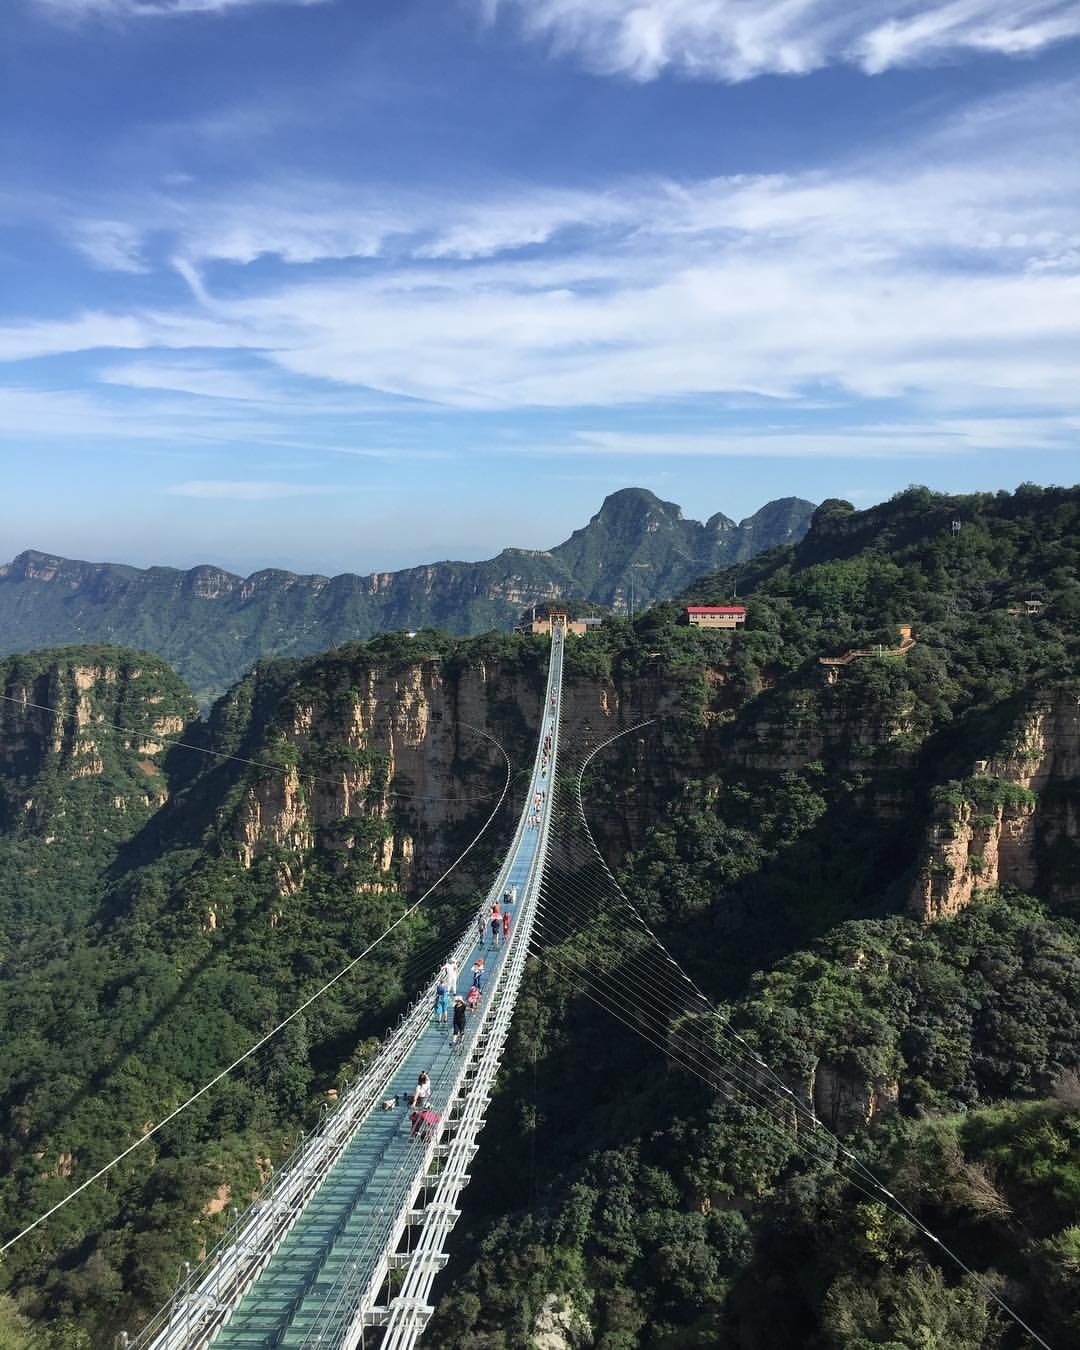 Enjoy The Scenic View Of China's Glass Bridge Constructed